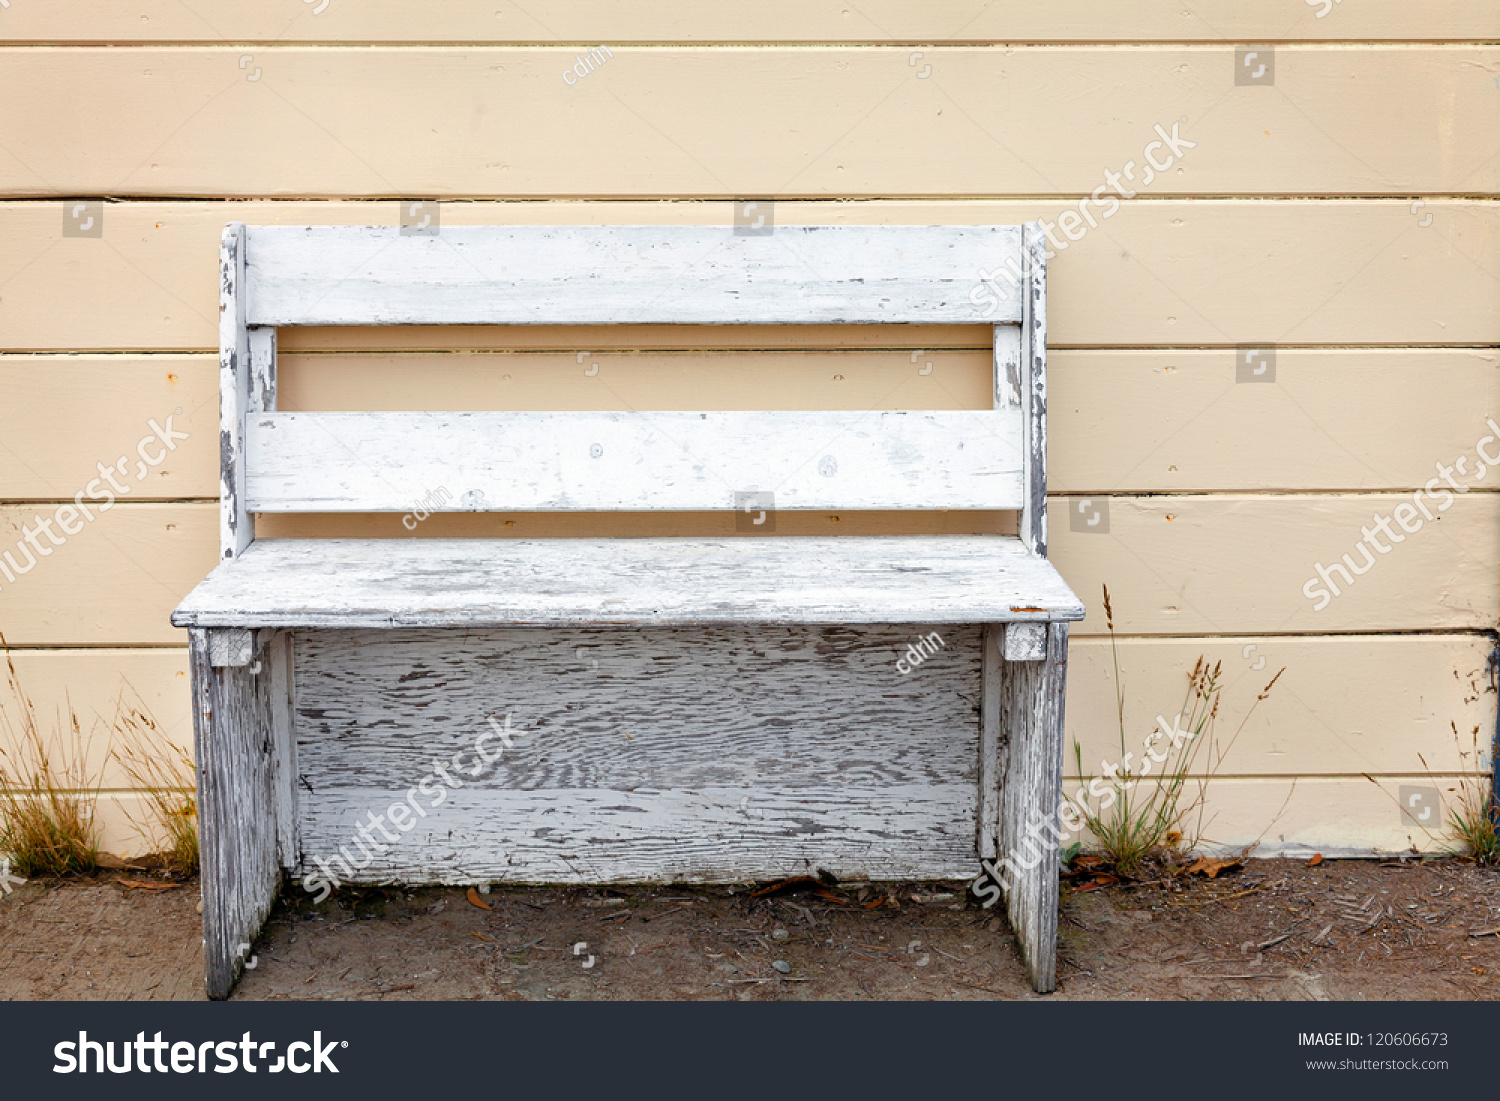 English Country Decor Rustic Wooden Outdoor Cottage Bench Painted Stock Photo